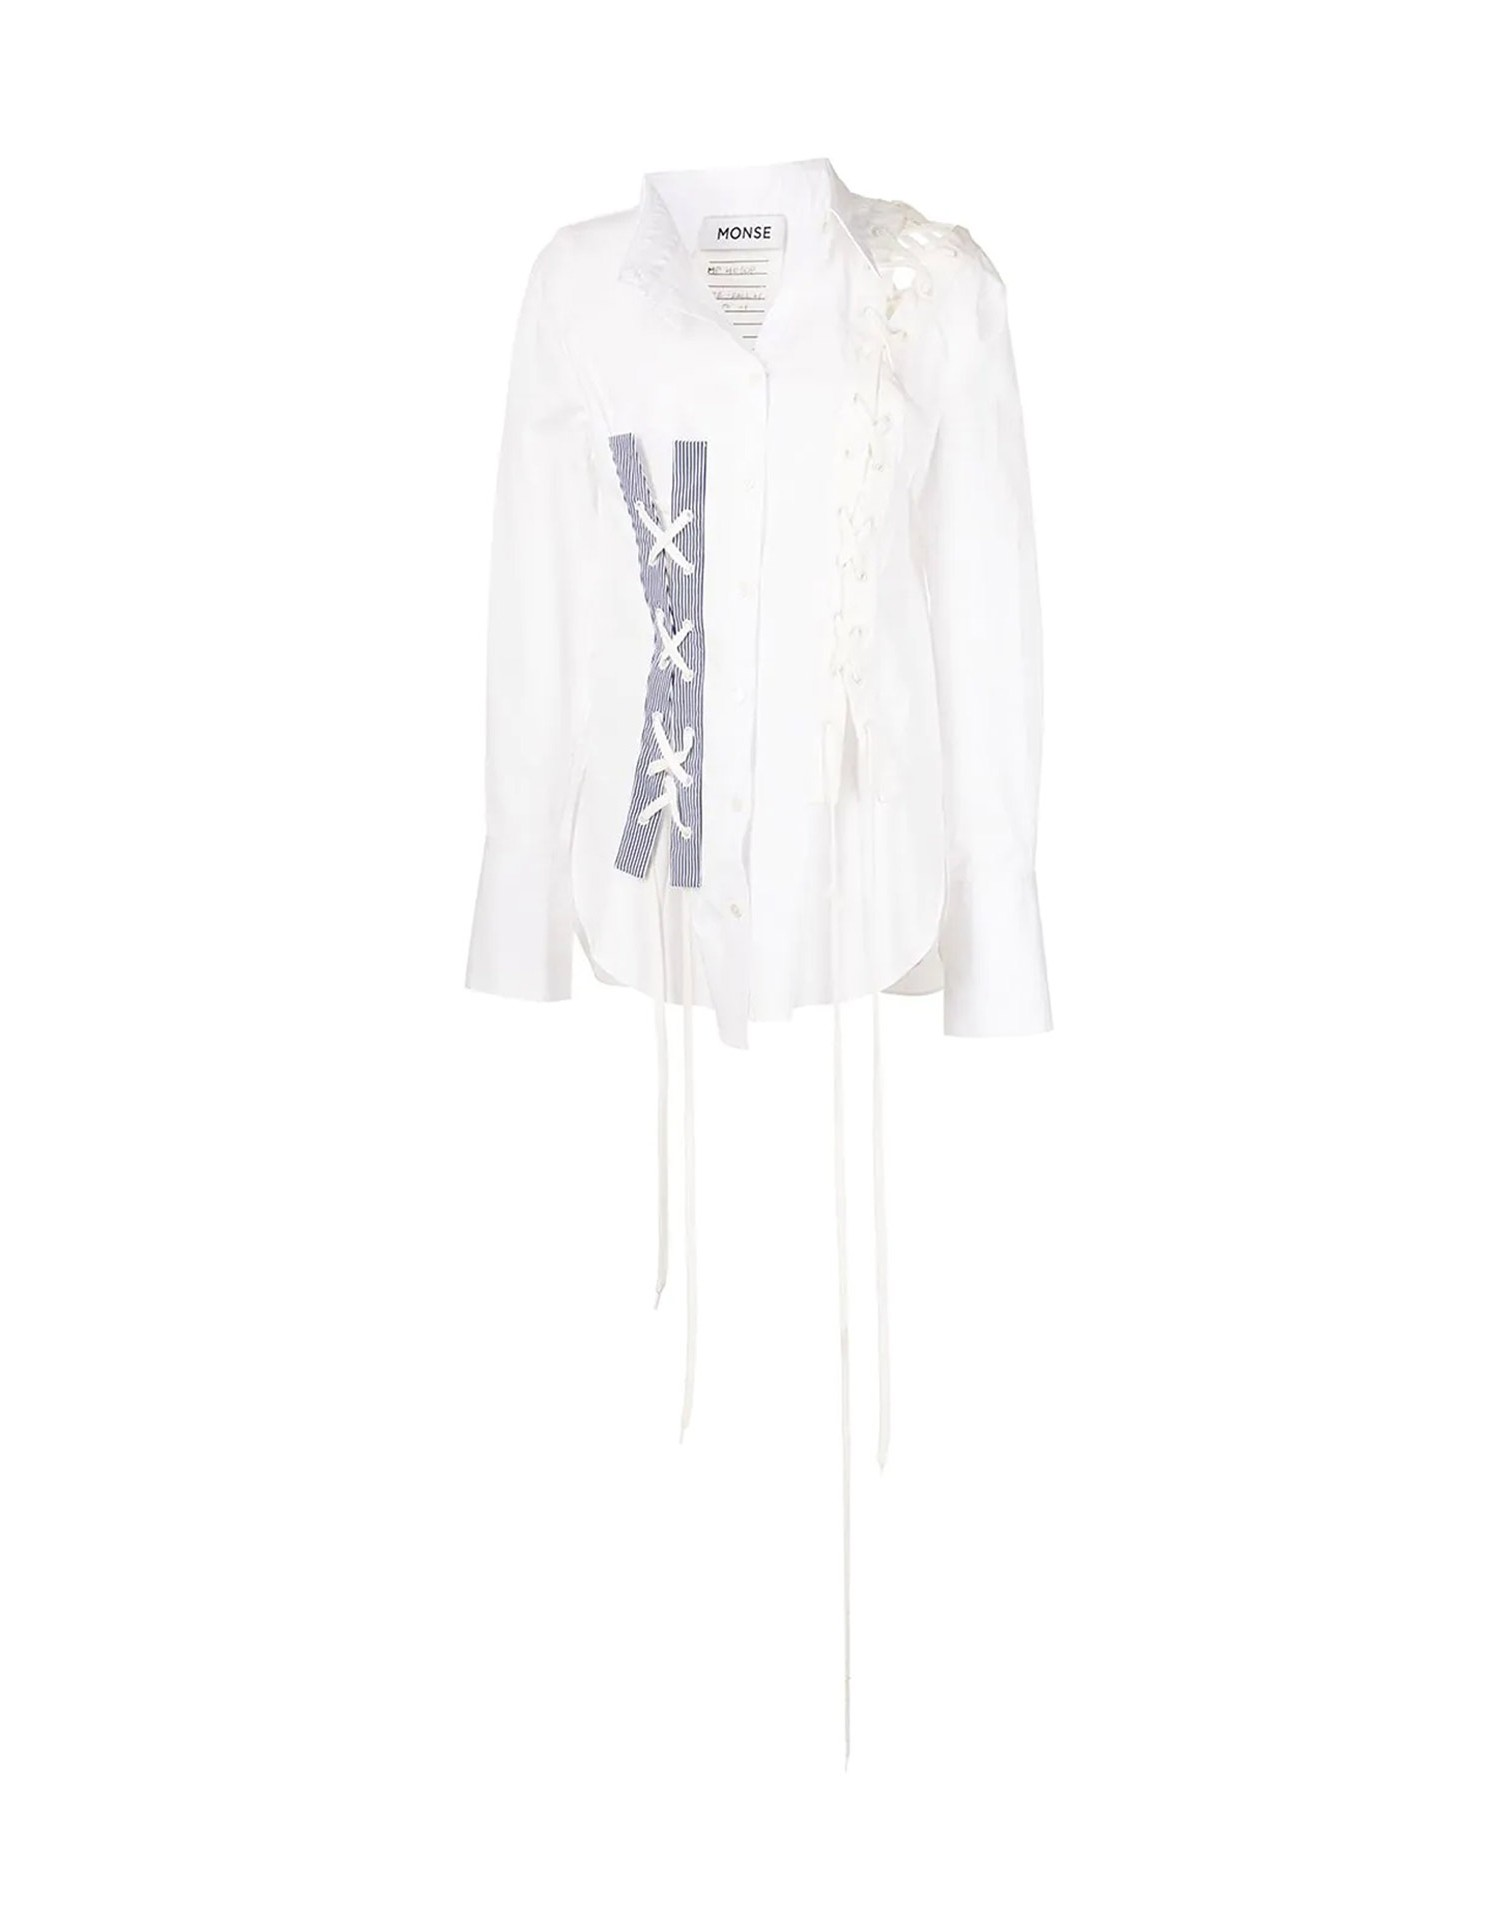 MONSE Crooked Lace Up Shirt on Model Front View